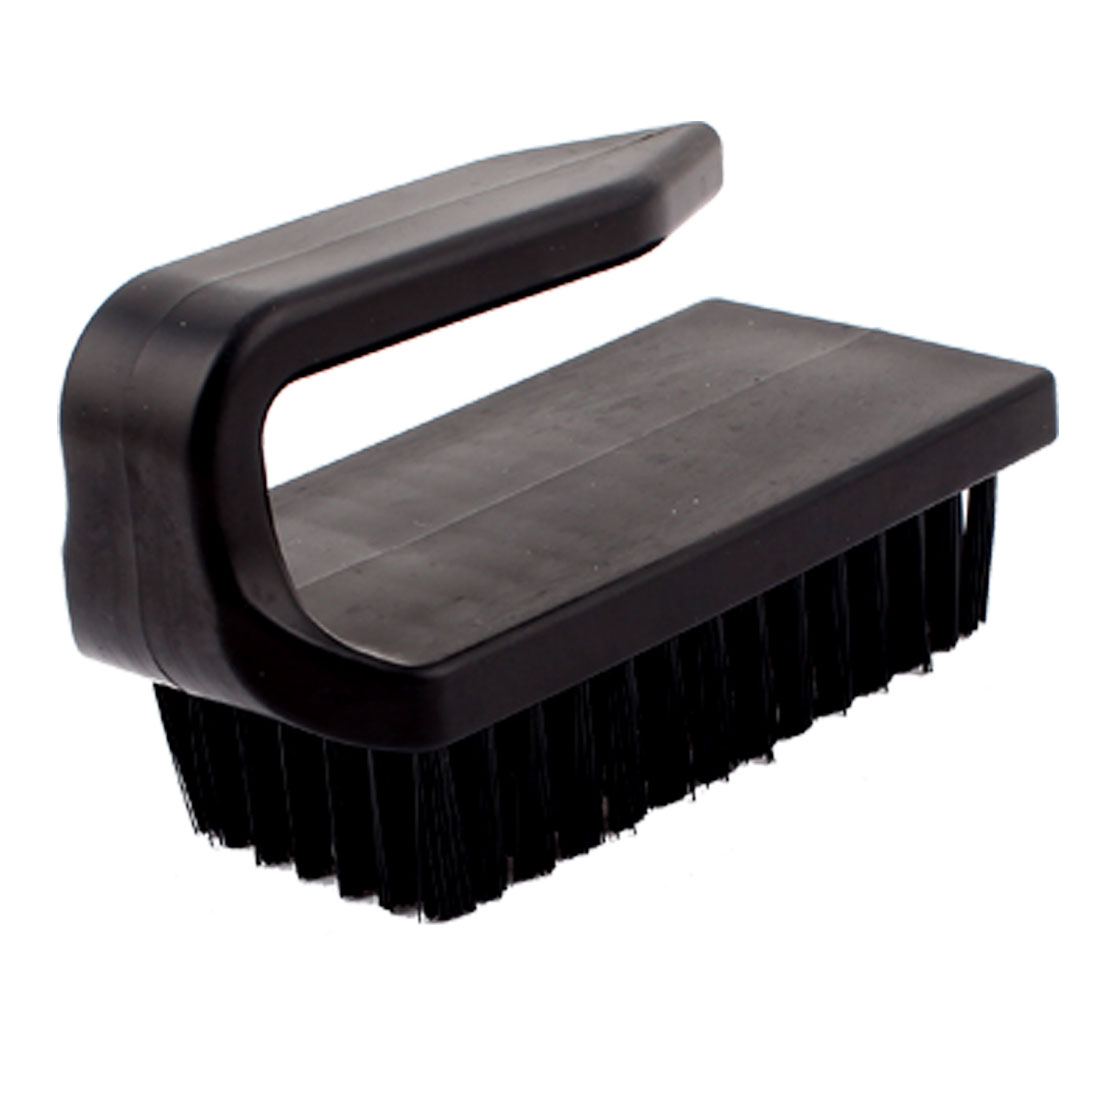 Plastic U Shape Black Handle Anti Static Control Conductive Ground Cleaning Brush Tool